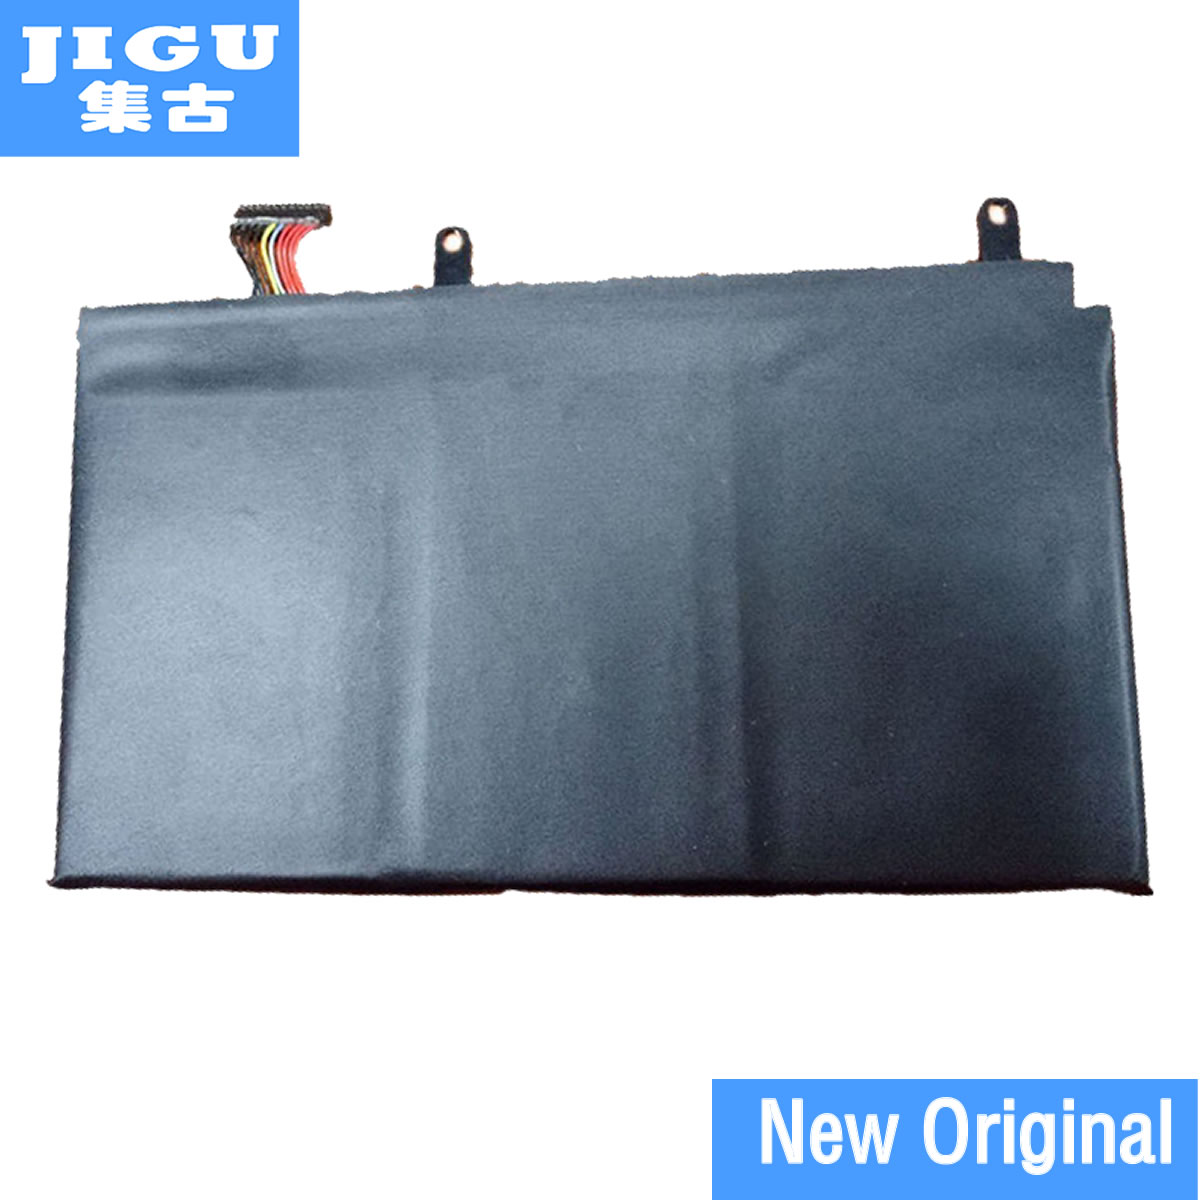 JIGU Original laptop Battery GNS-160 GNS-I60 961TA010FA FOR GIGABYTE P35G v2 P35K P35W v2 P35X v3 P37X v5 P57W P57X v6 jigu laptop battery for dell 8858x 8p3yx 911md vostro 3460 3560 latitude e6120 e6420 e6520 4400mah